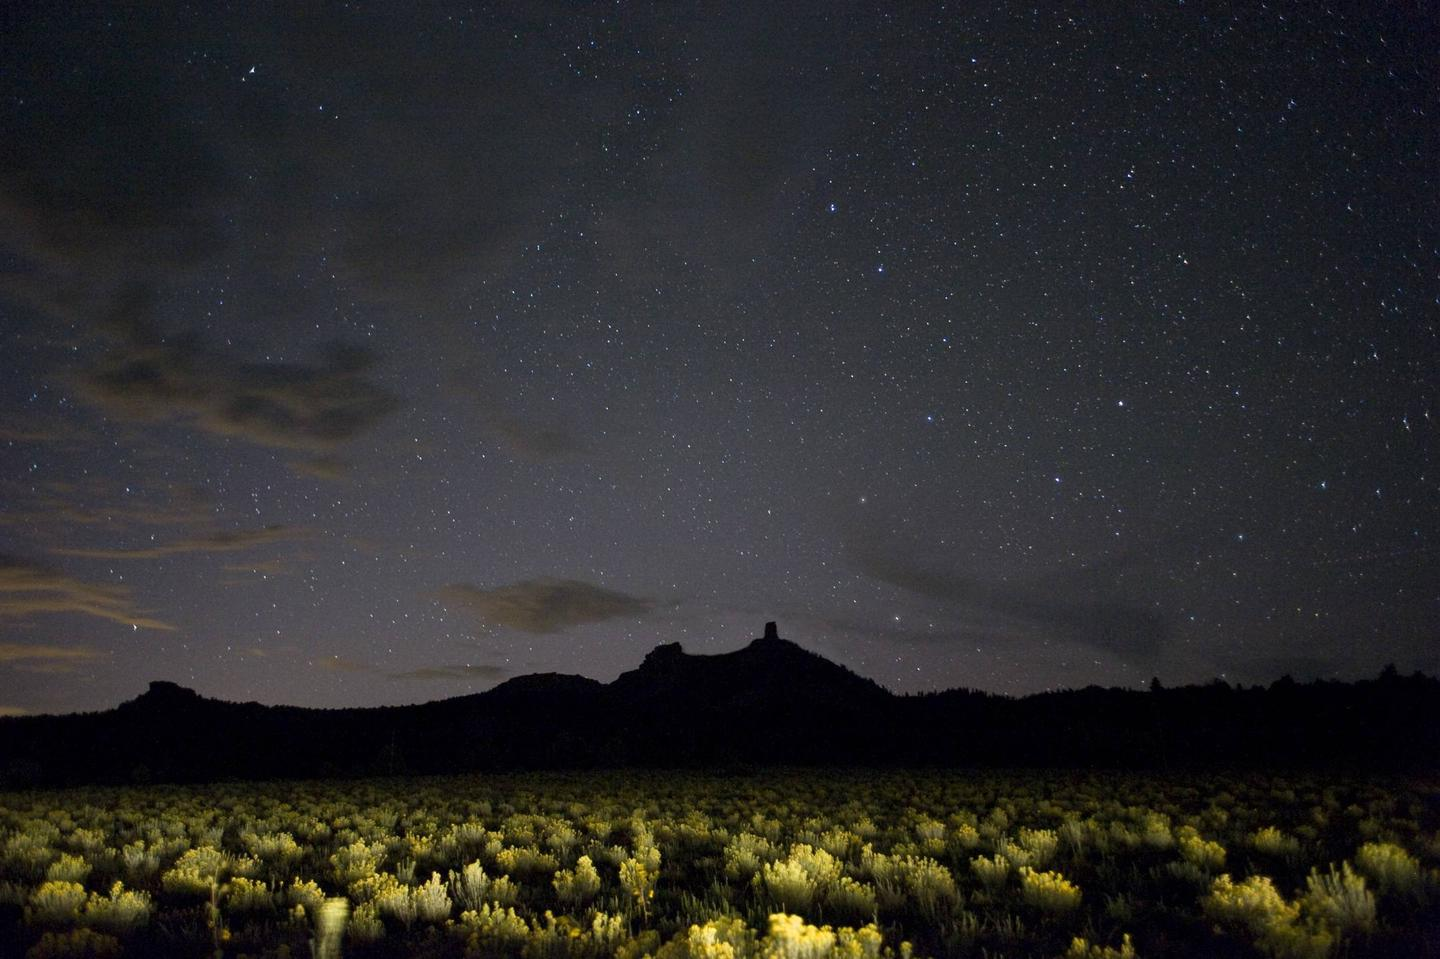 Stars & galaxy viewing of the night sky through telescopes at Chimney RockLearn about how the ancient Puebloans used the night sky and get a closer look at the stars and galaxies through telescopes!